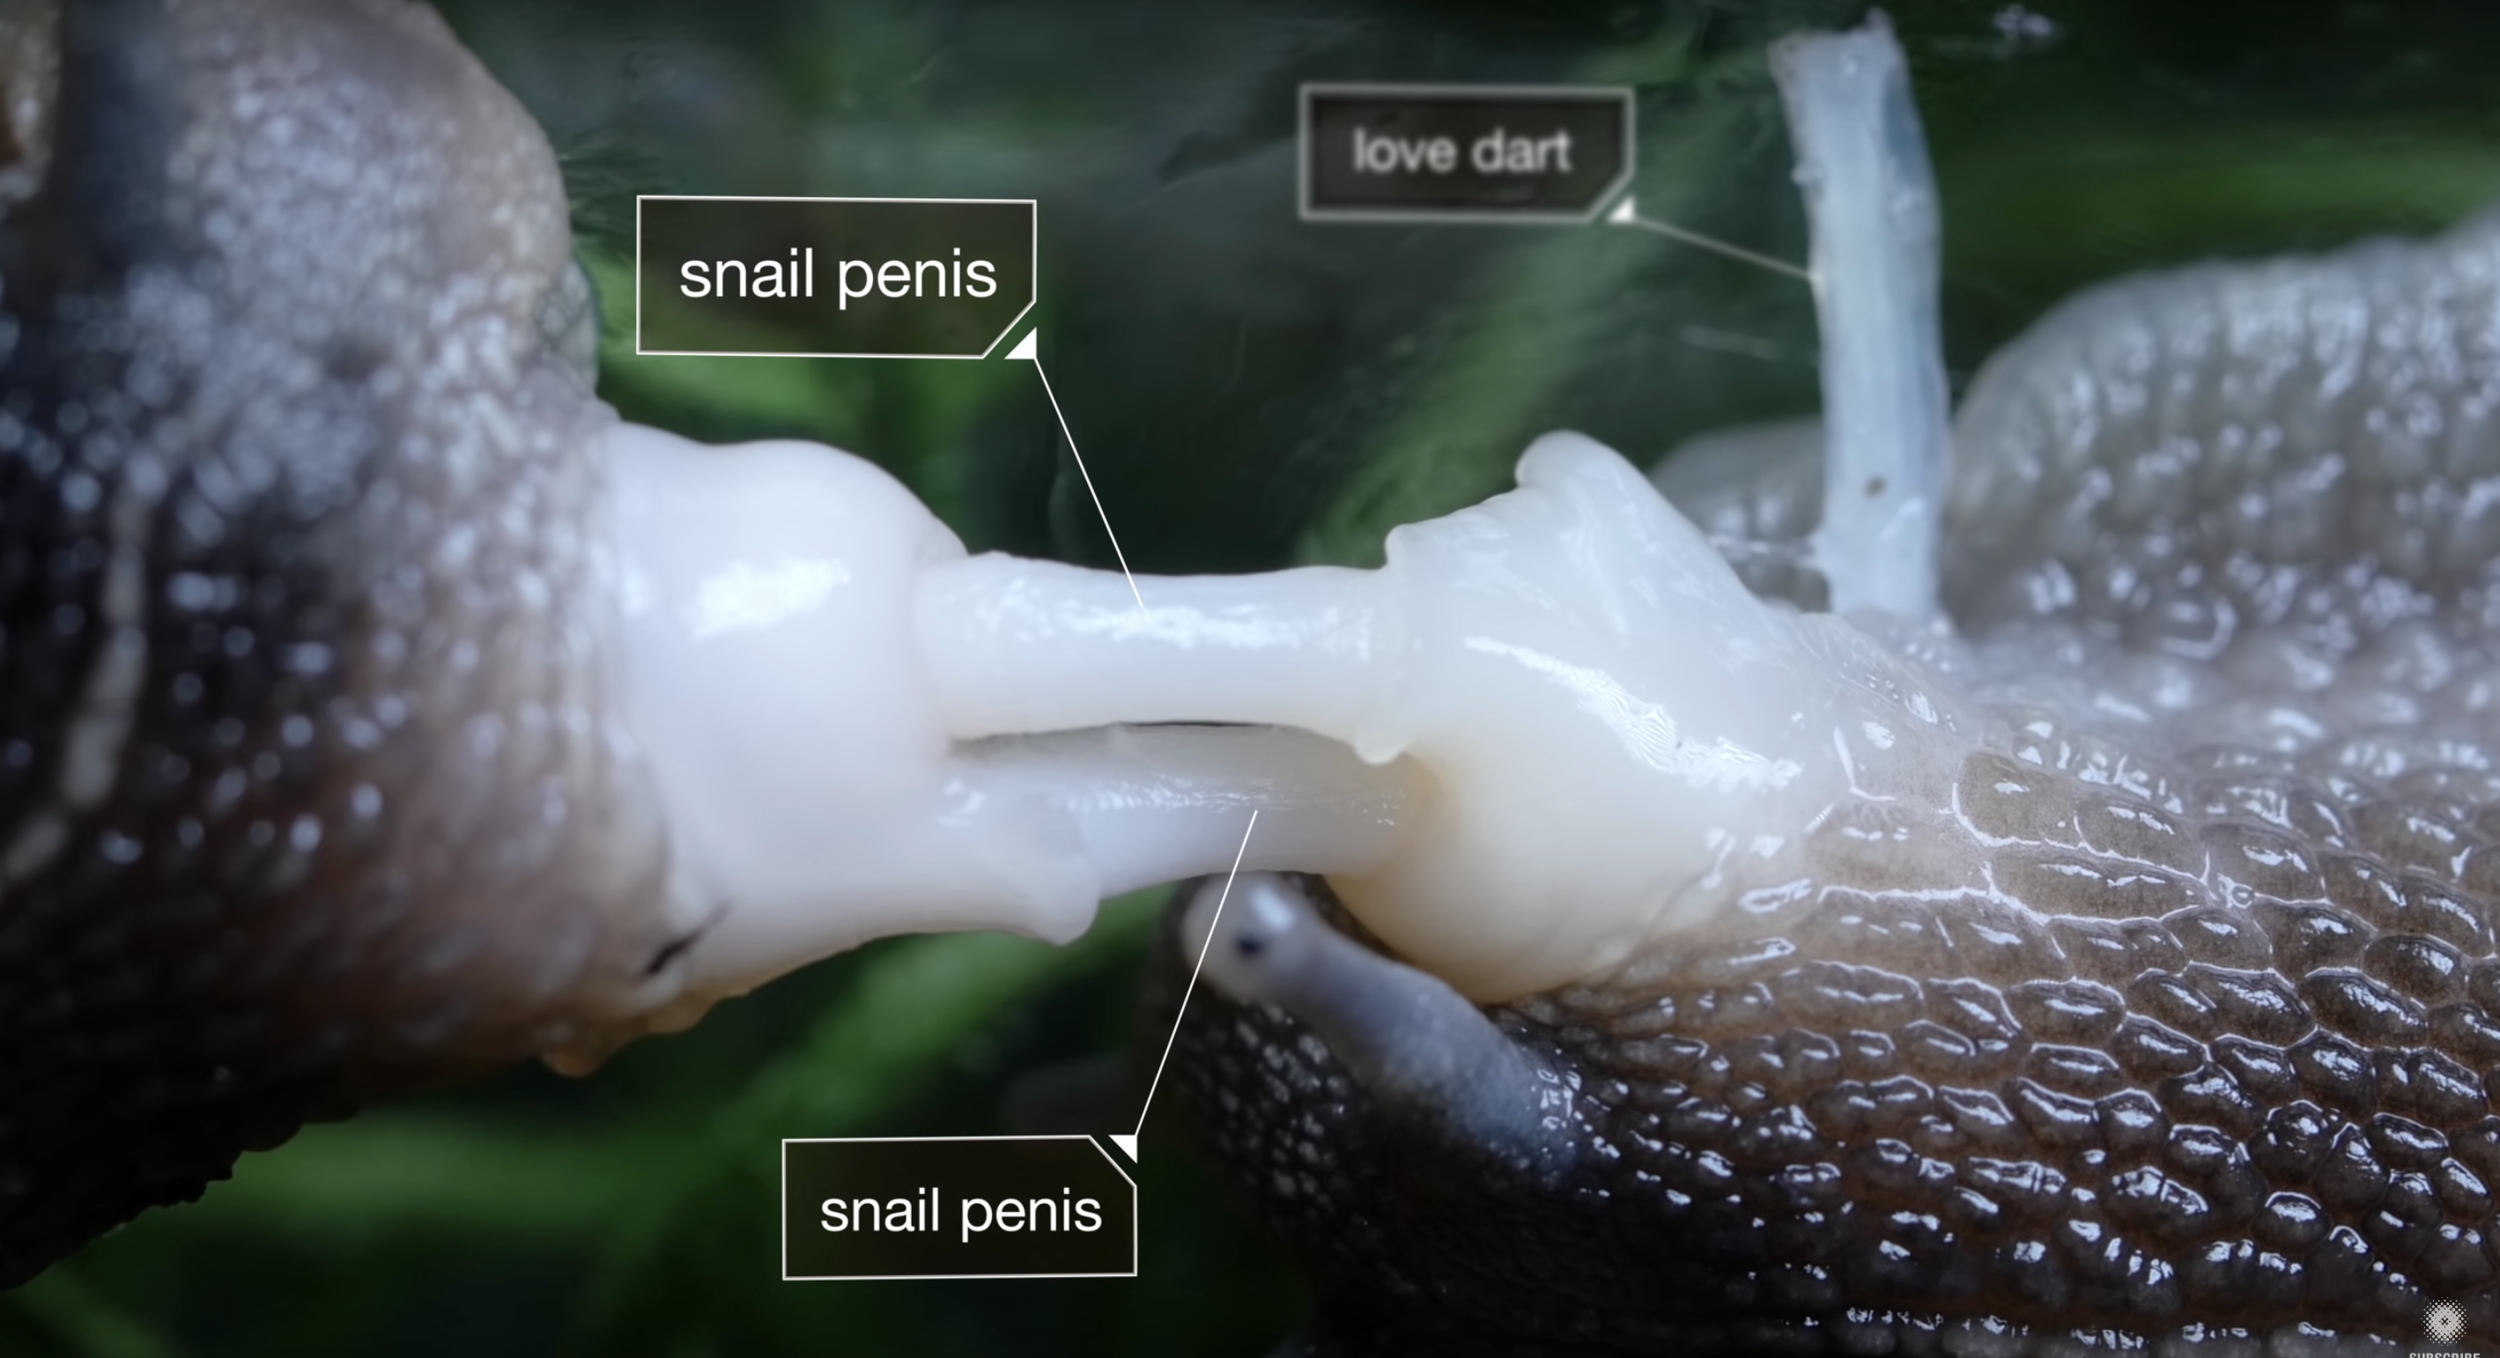 """7. """"Everything You Never Wanted to Know About Snail Sex."""" Deep Look, PBS Digital Studios. Published on Youtube, 14 March. 2017, https://www.youtube.com/watch?v=UOcLaI44TXA"""